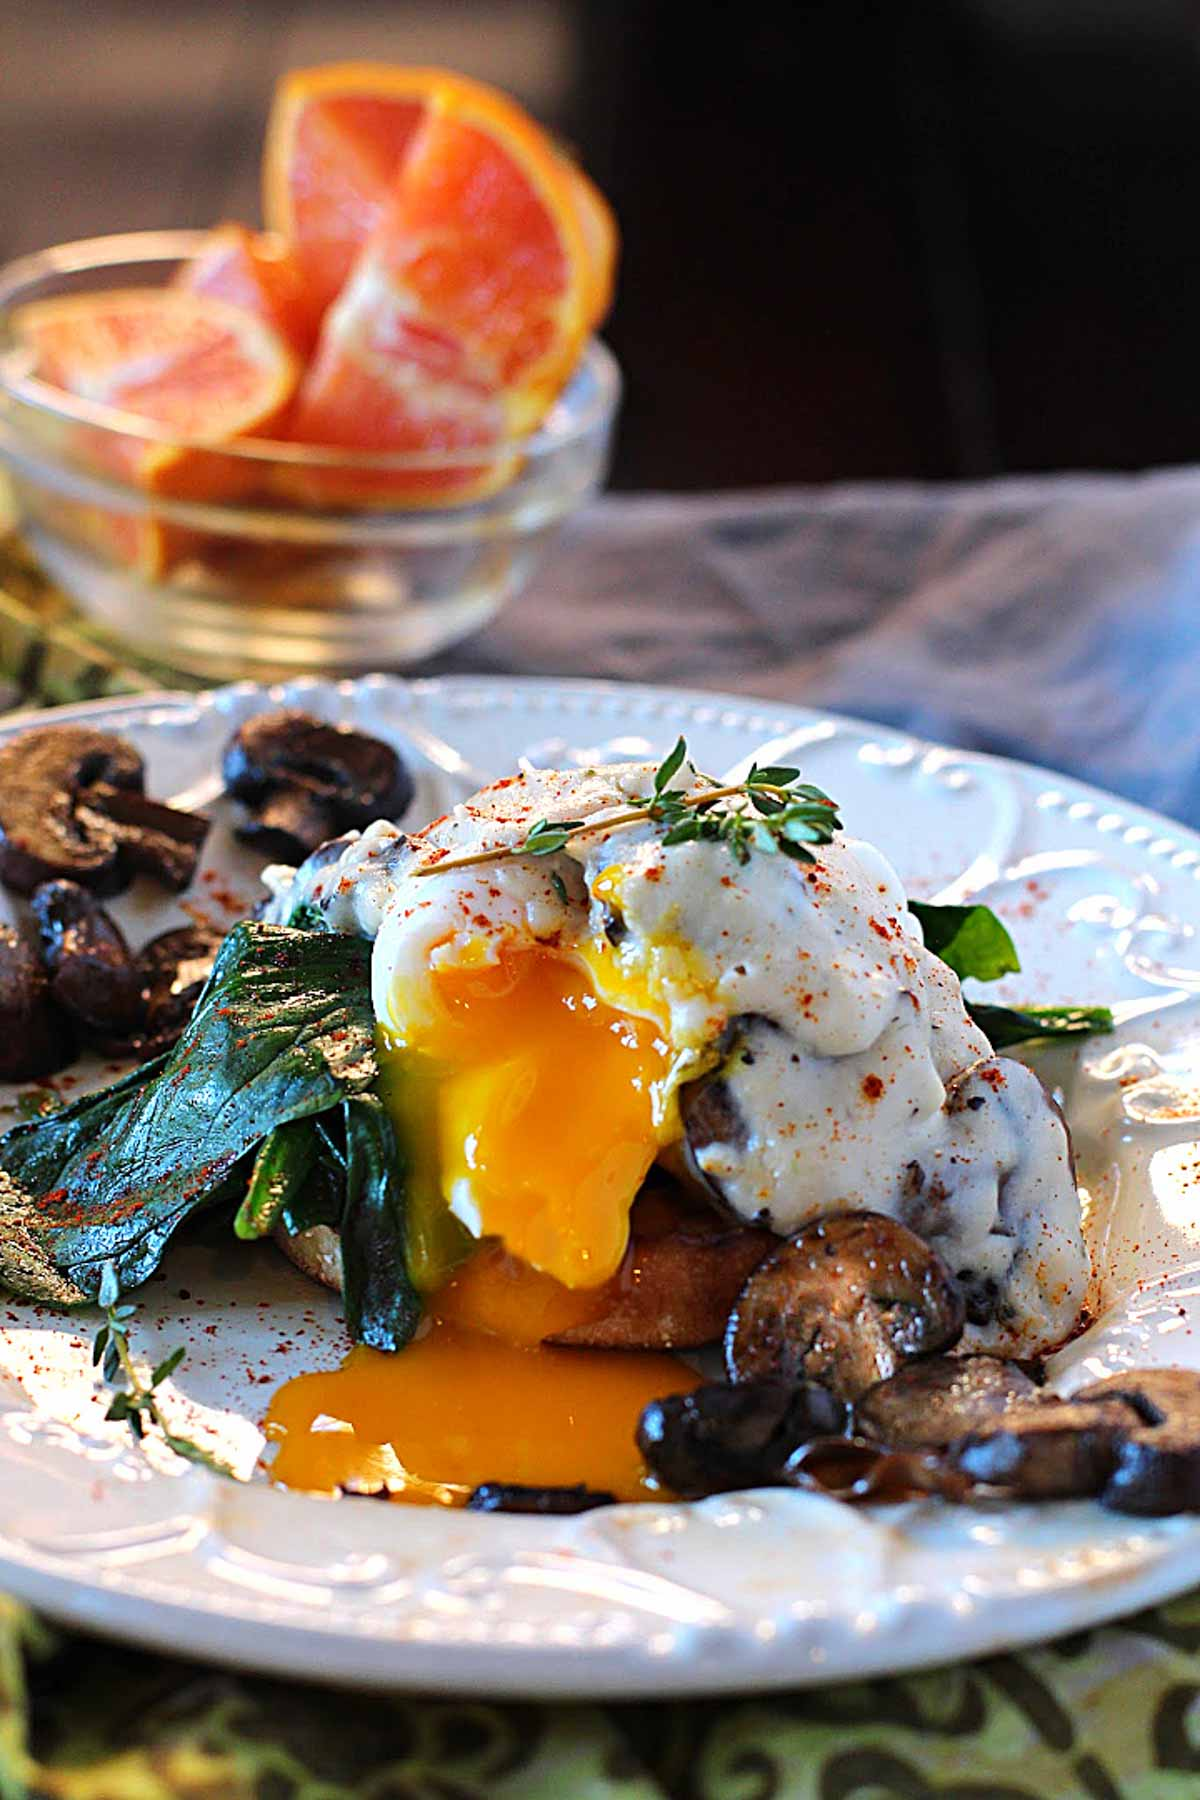 Eggs benedict with mushrooms, spinach and gravy